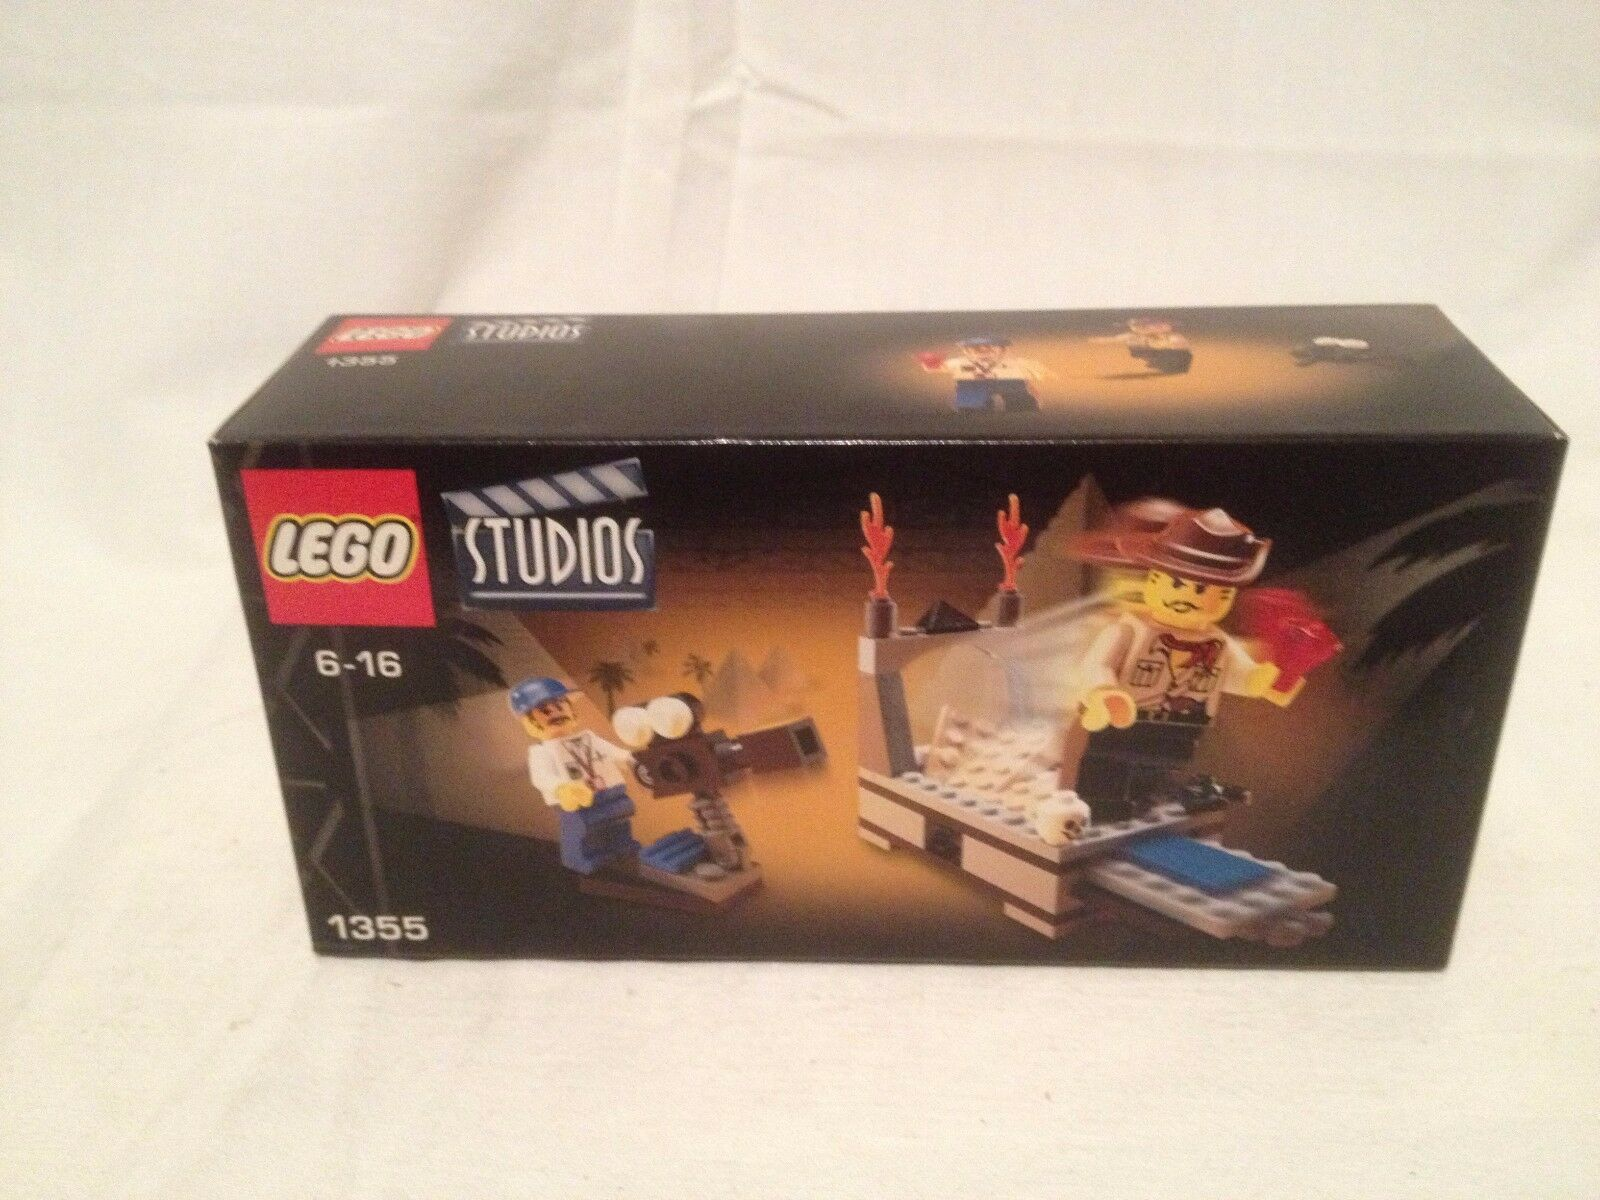 Lego Lego Lego Studios 1355 Temple of Gloom NEUF 1 édition e9574e